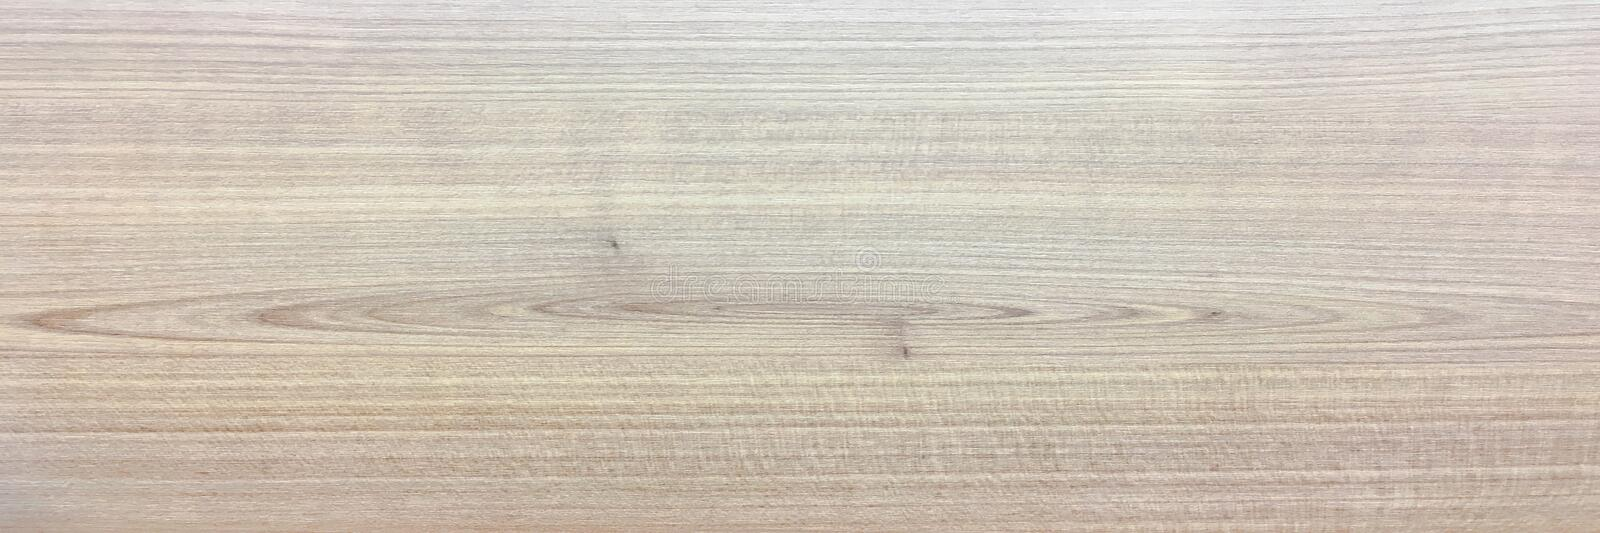 Light wood texture background surface with old natural pattern or old wood texture table top view. Grain surface with wood texture royalty free stock image